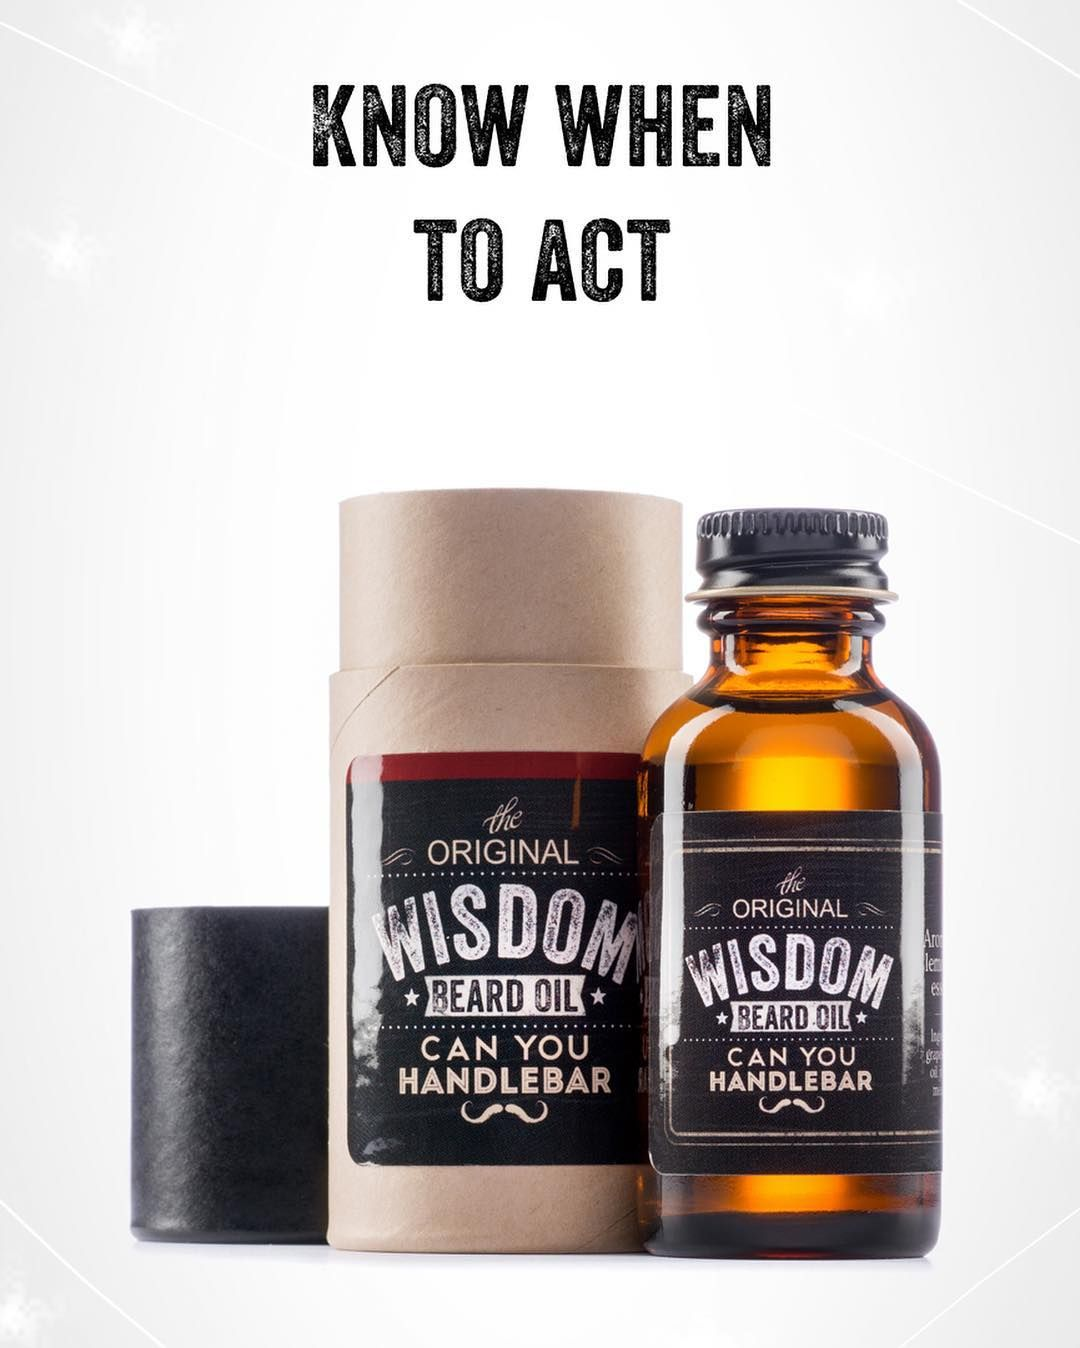 Our cedar and spruce scented Wisdom Beard Oil gives you the clarity needed so you can apply knowledge to real life. Tap the link in our bio to see more!  #WisdomBeardOil #BeWise #BeardCare #BeardOil #BeardStyle #MoustacheCare #Moustaches #CanYouHandlebar